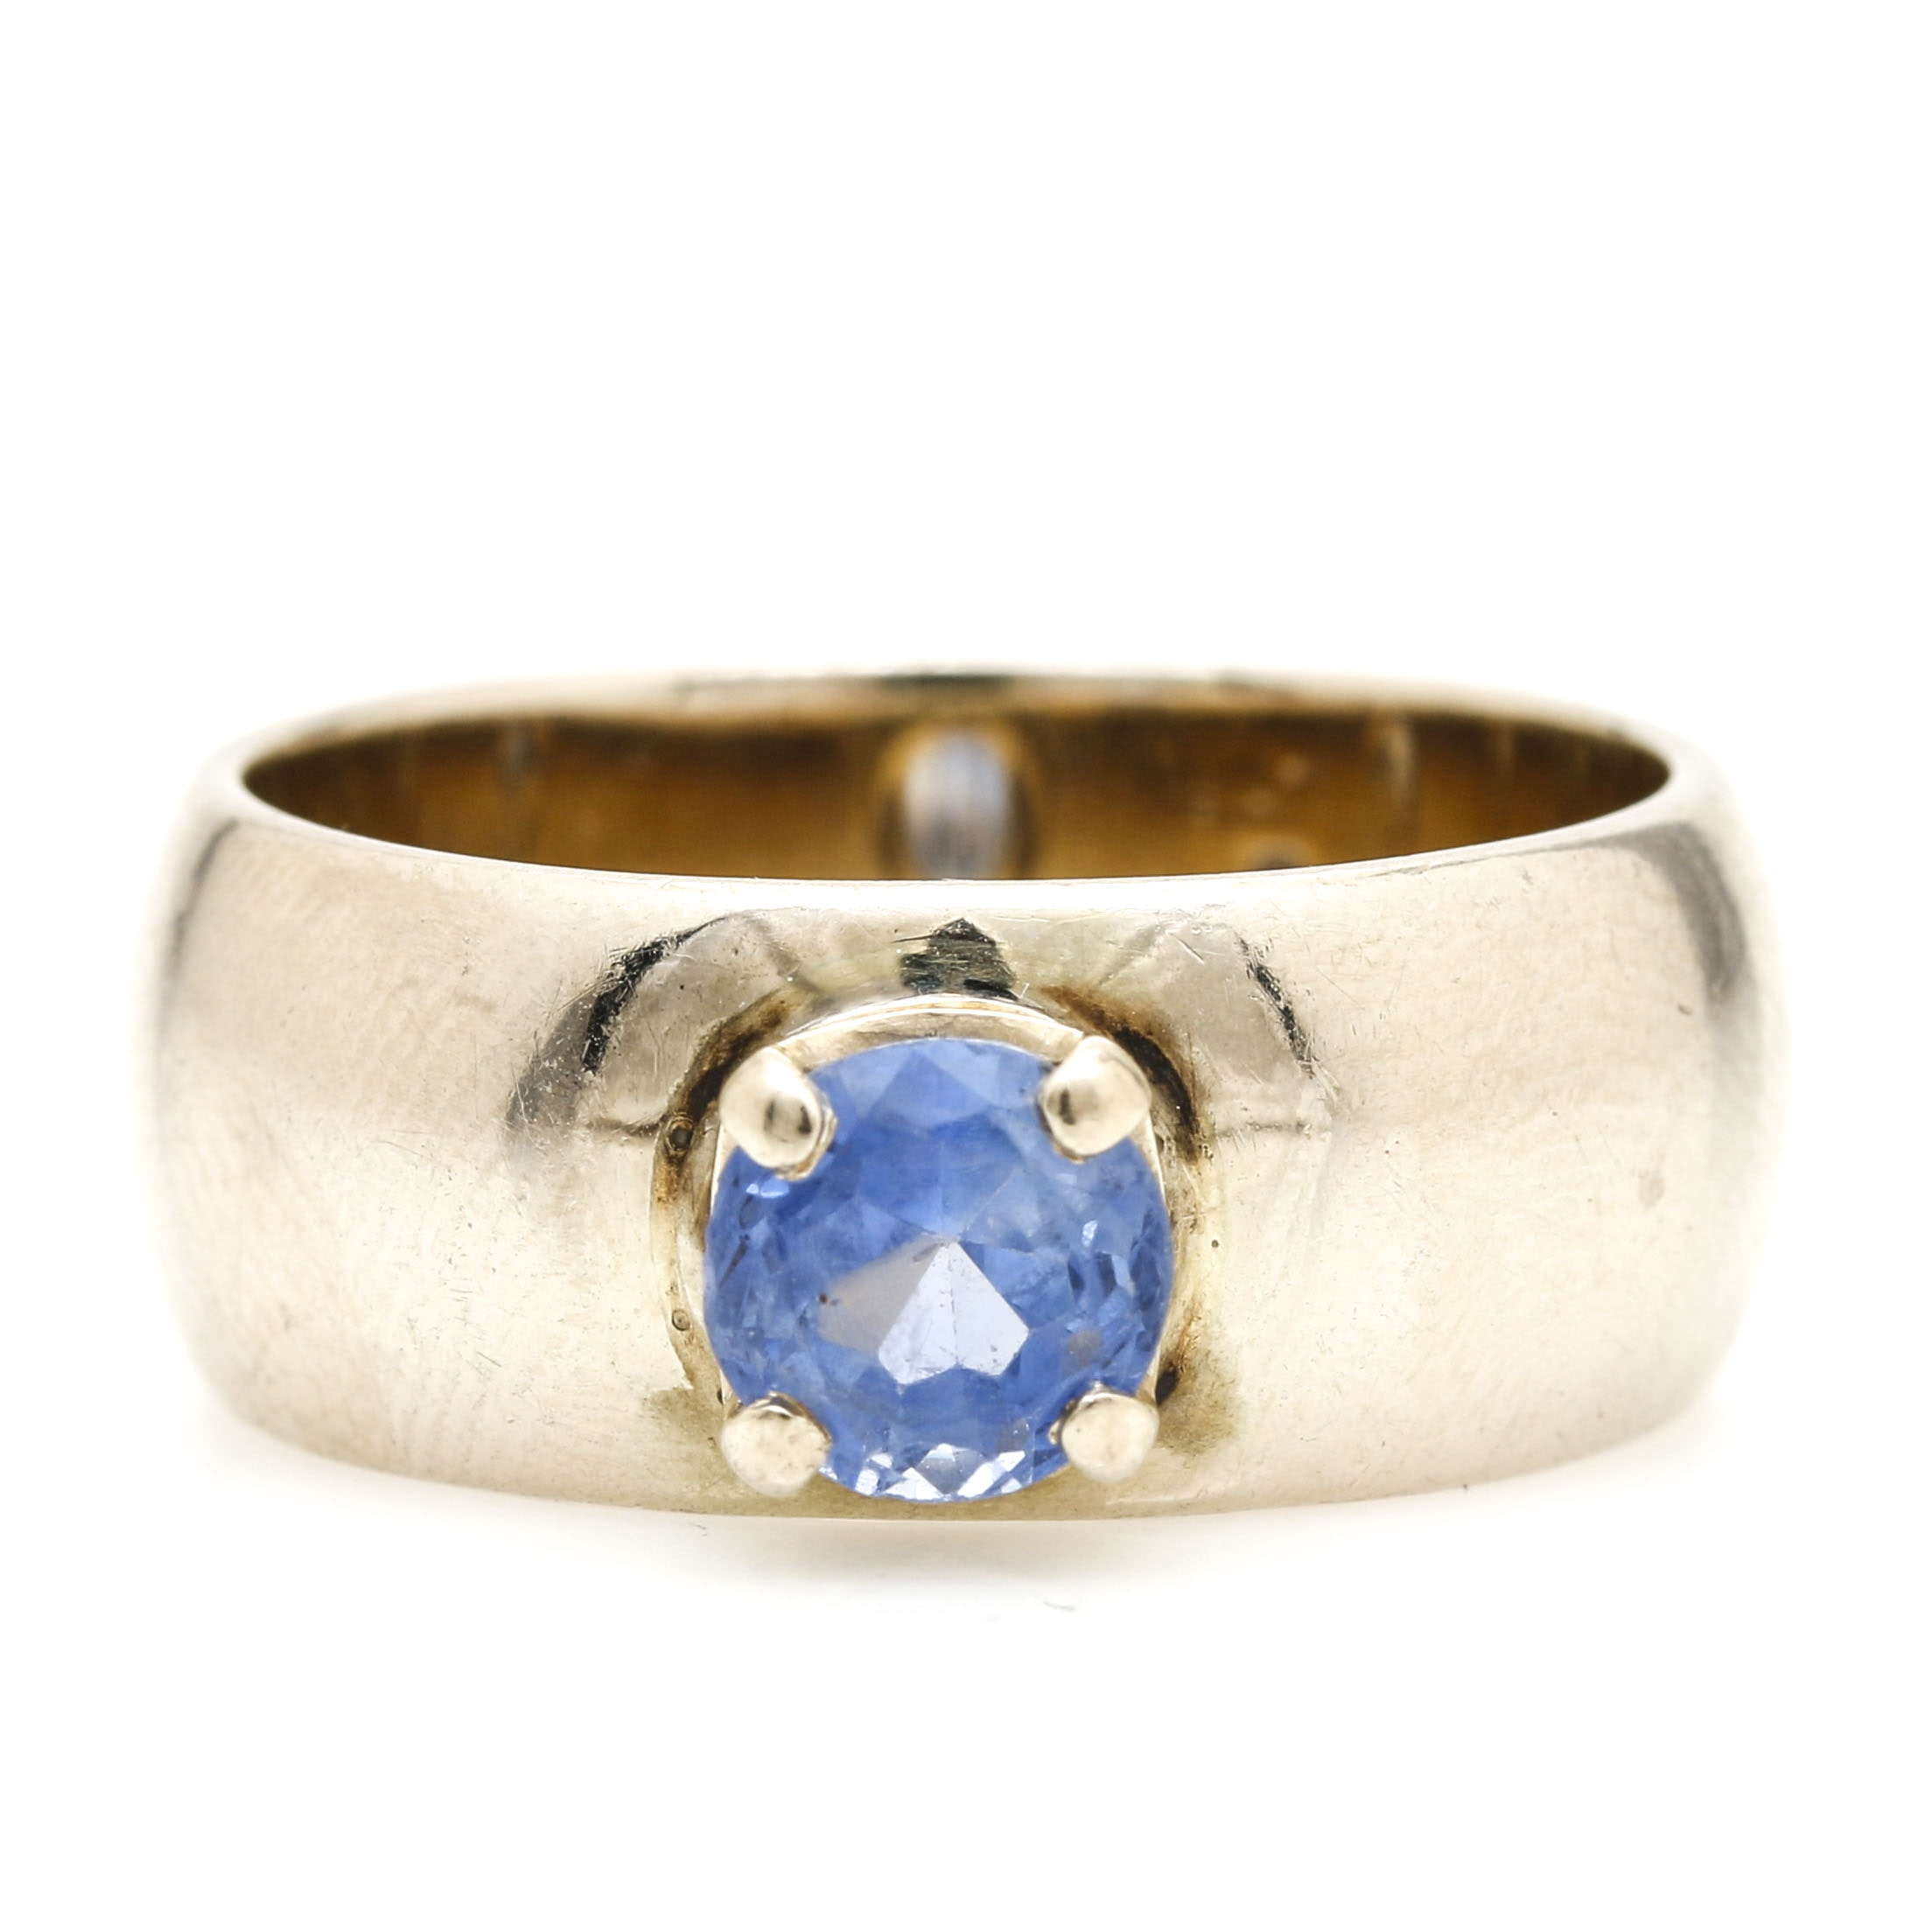 14K Yellow Gold 1.04 CTS Fancy Violet Sapphire Ring